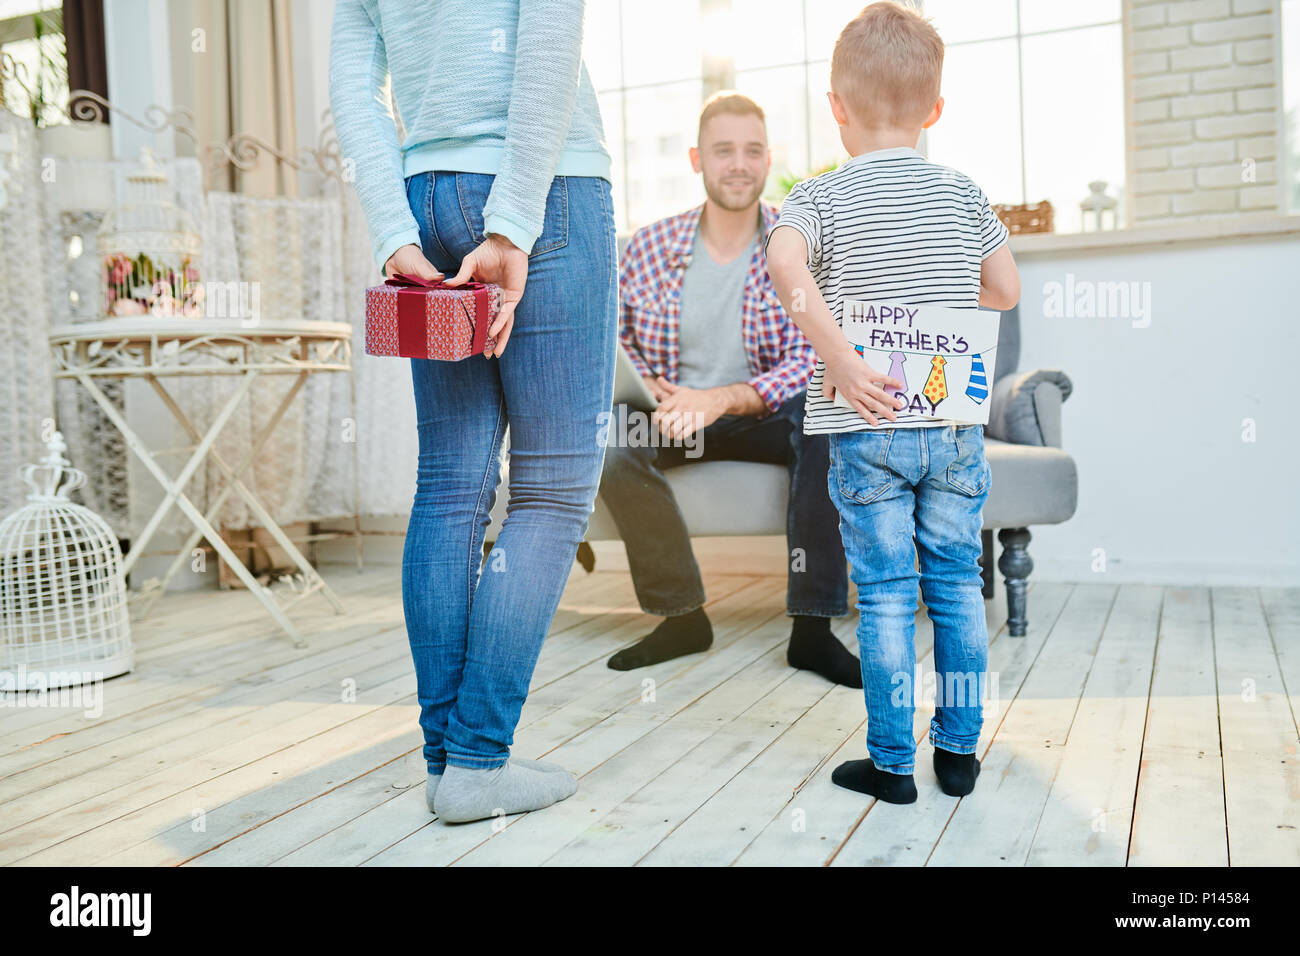 Young Family Celebrating Fathers Day Stock Photo